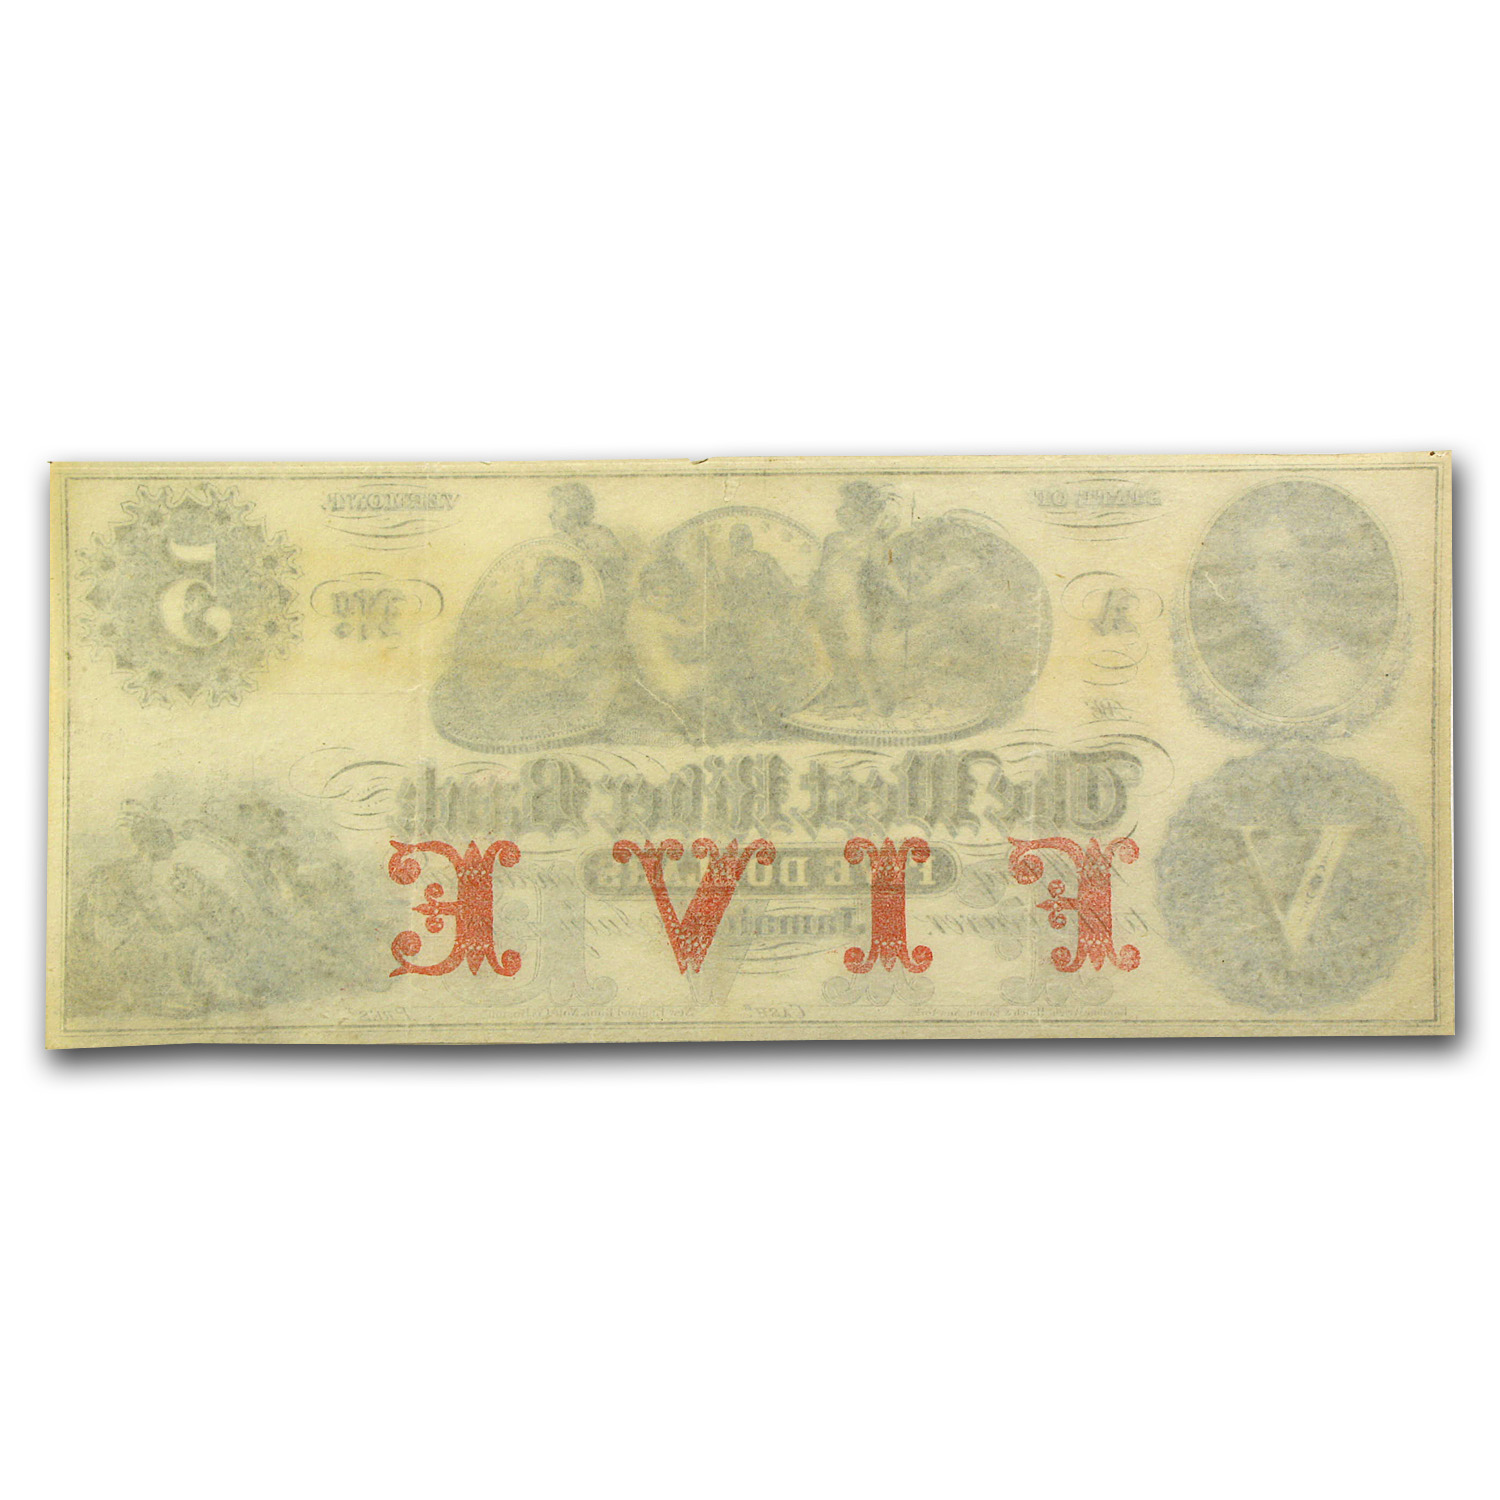 18__ The West River Bank, Jamaica, VT $5.00 Note VT-115 XF